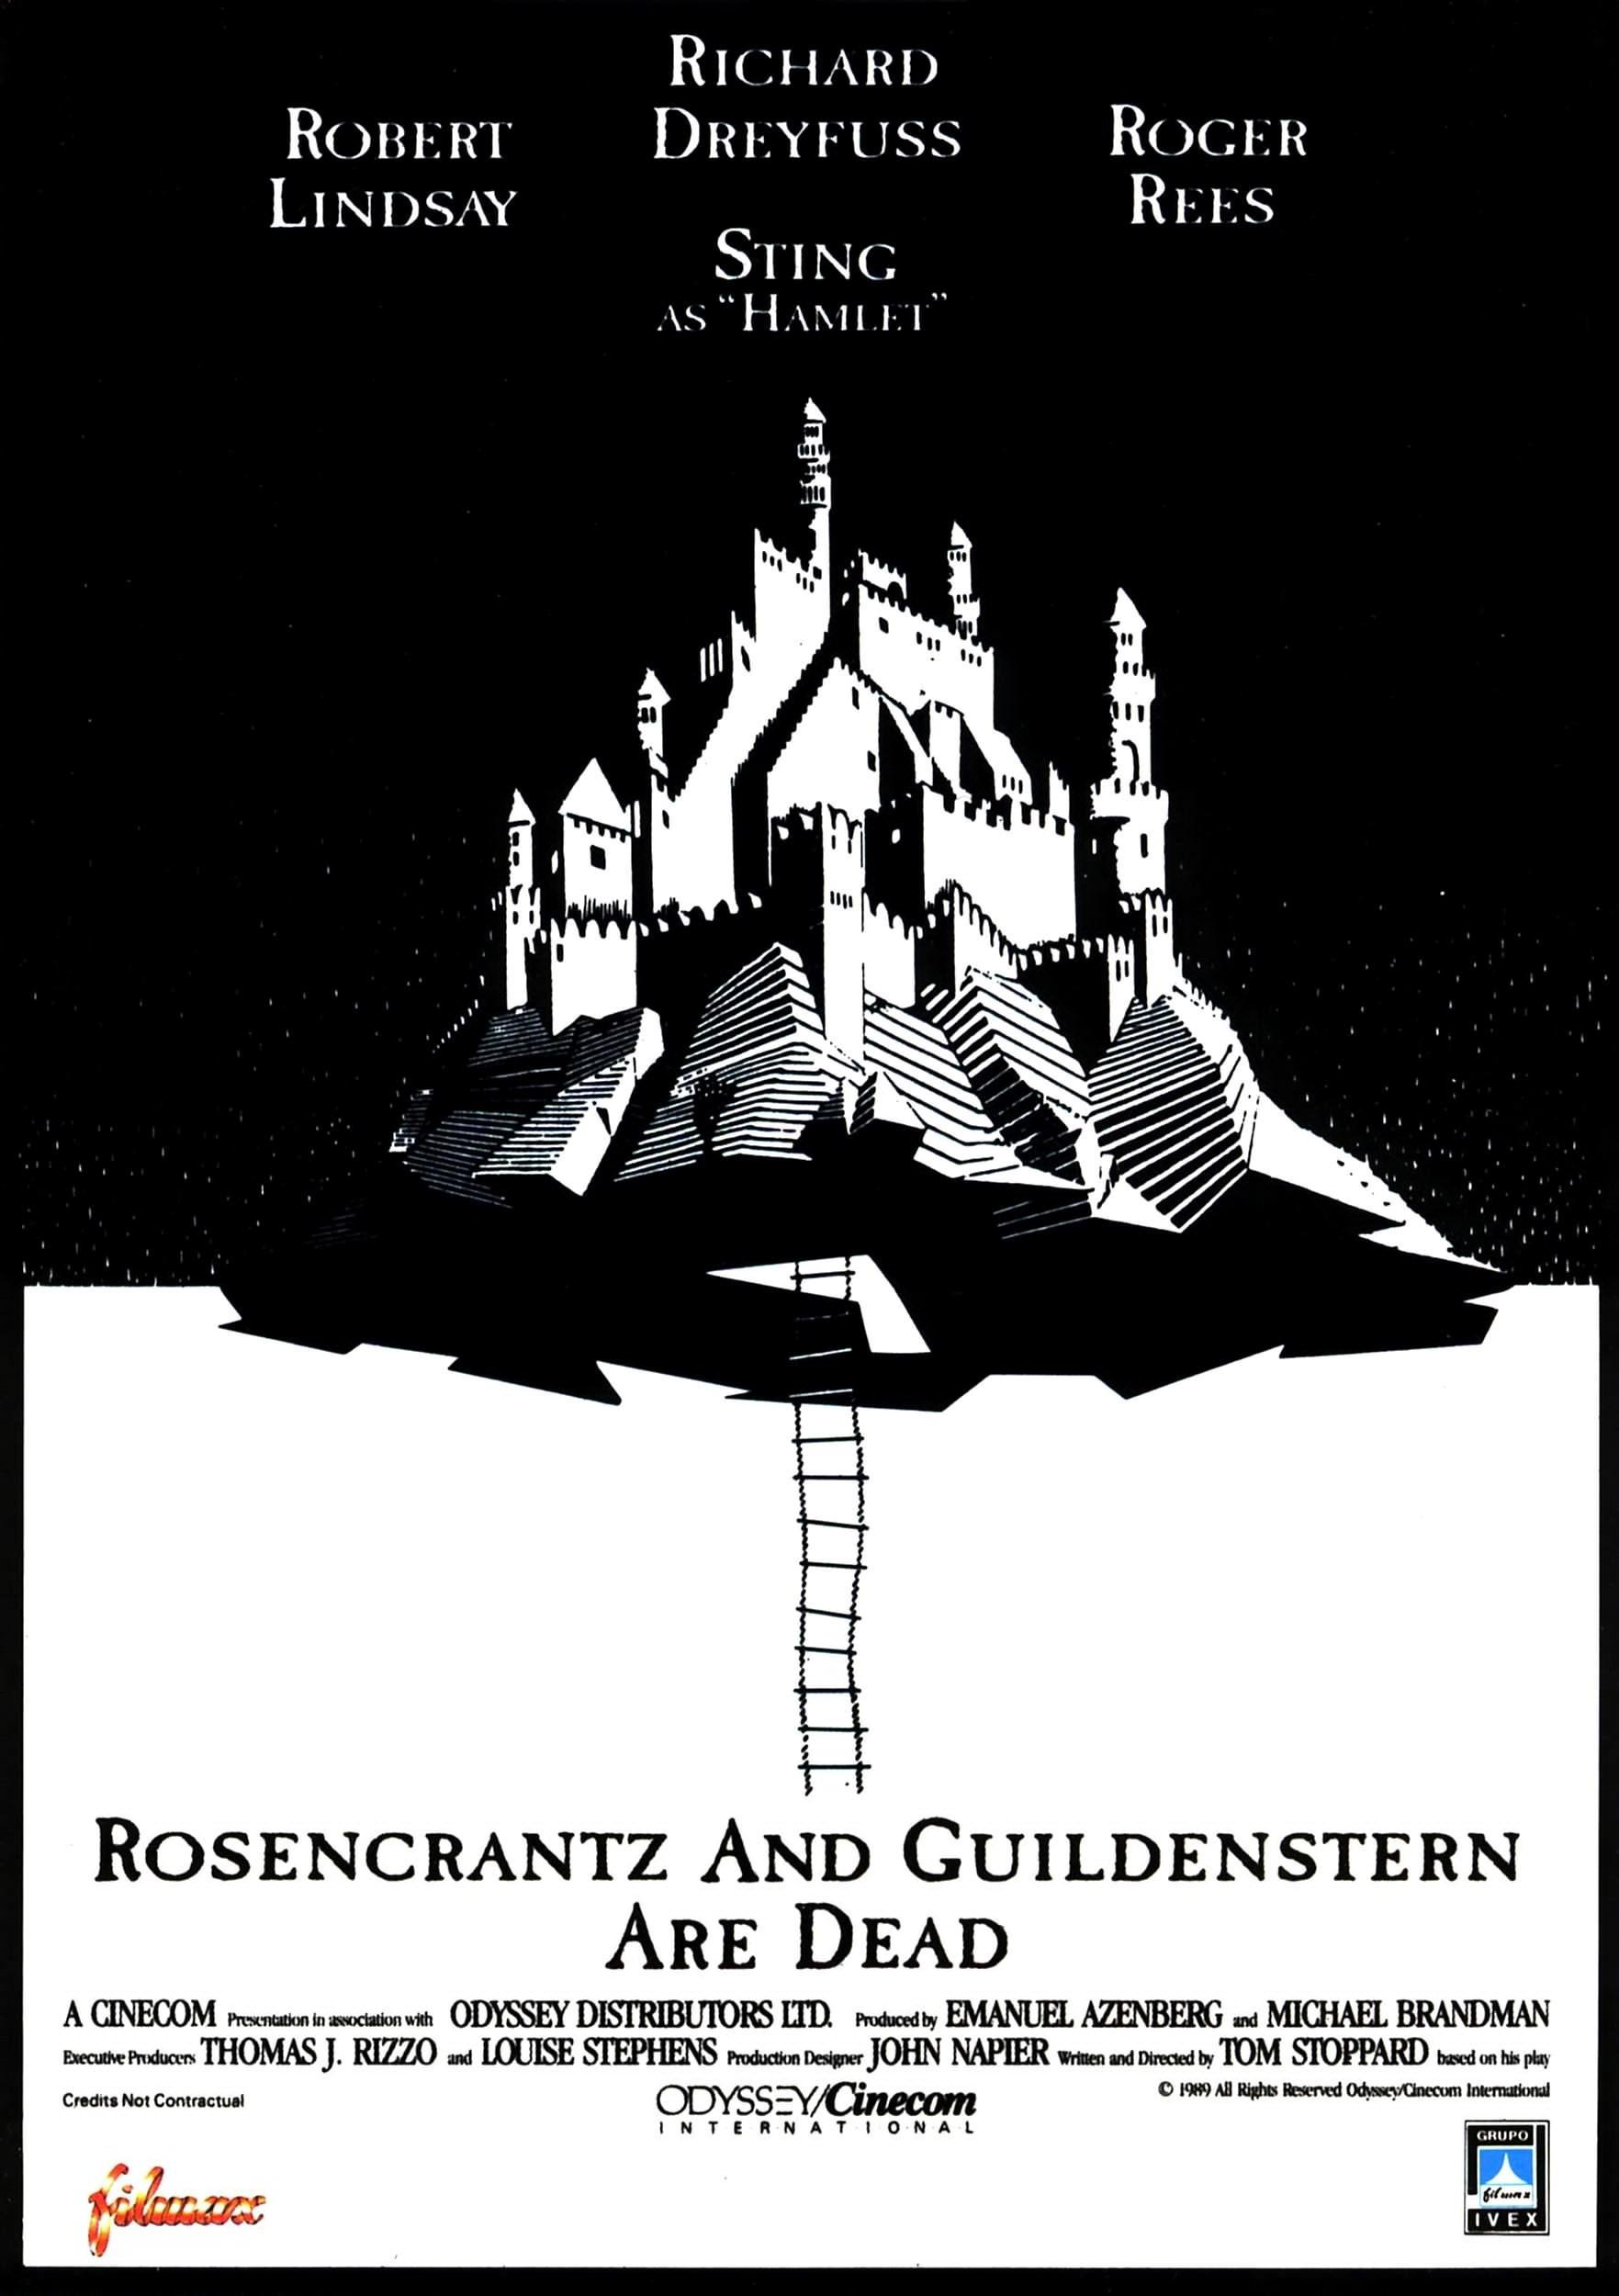 "an introduction to the placement of polonius by rosencrantz and guildenstern Free sample existentialism essay on rosencratz and guildenstern in hamlet to movie ""the lion polonius, gertrude, ophelia, rosencrantz."